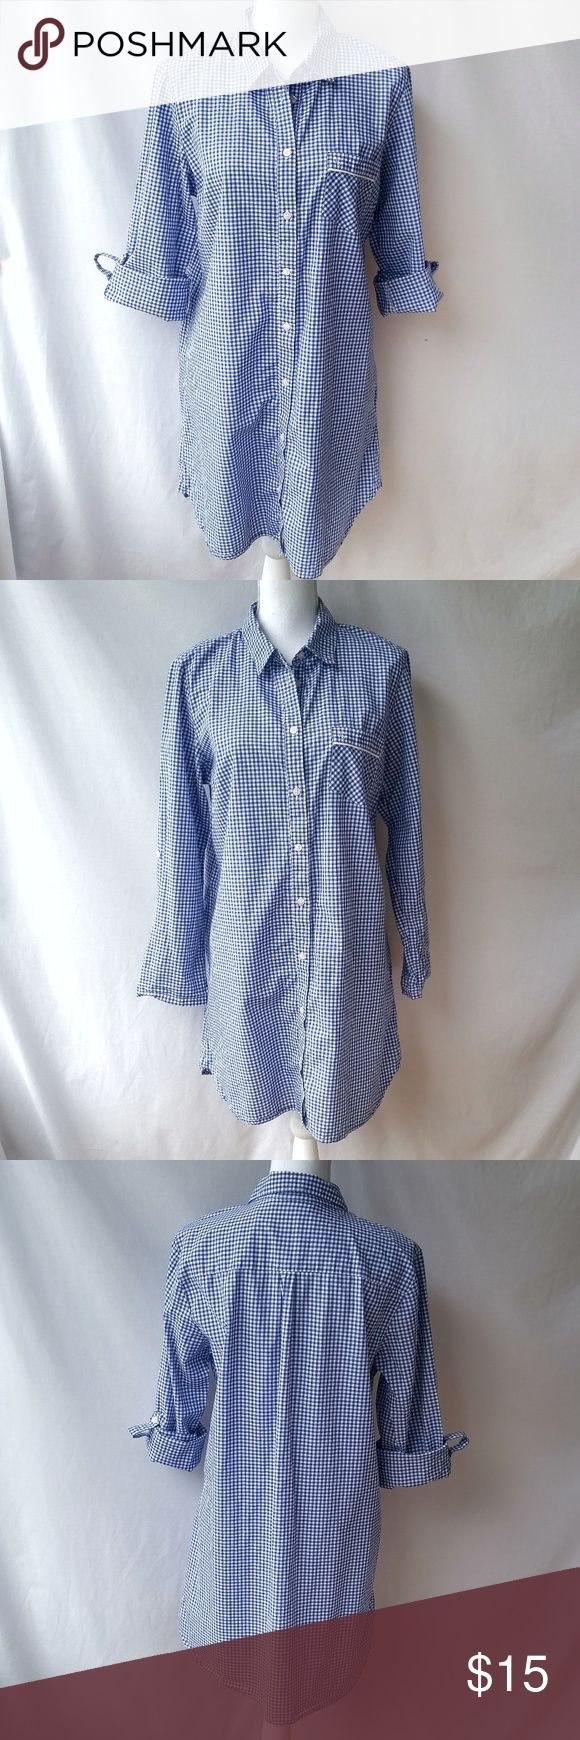 "Victoria's Secret Nightdress Blue Gingham Check L Good pre-owned condition- light wear/ minor imperfections throughout due to normal use and washing, some stray threads along seams, no rips, holes, or stains. 100% cotton Size large 21.5"" armpit to armpit 34.5"" long 28"" sleeve (has a button and strap to keep it up when rolled) Victoria's Secret Intimates & Sleepwear Pajamas"